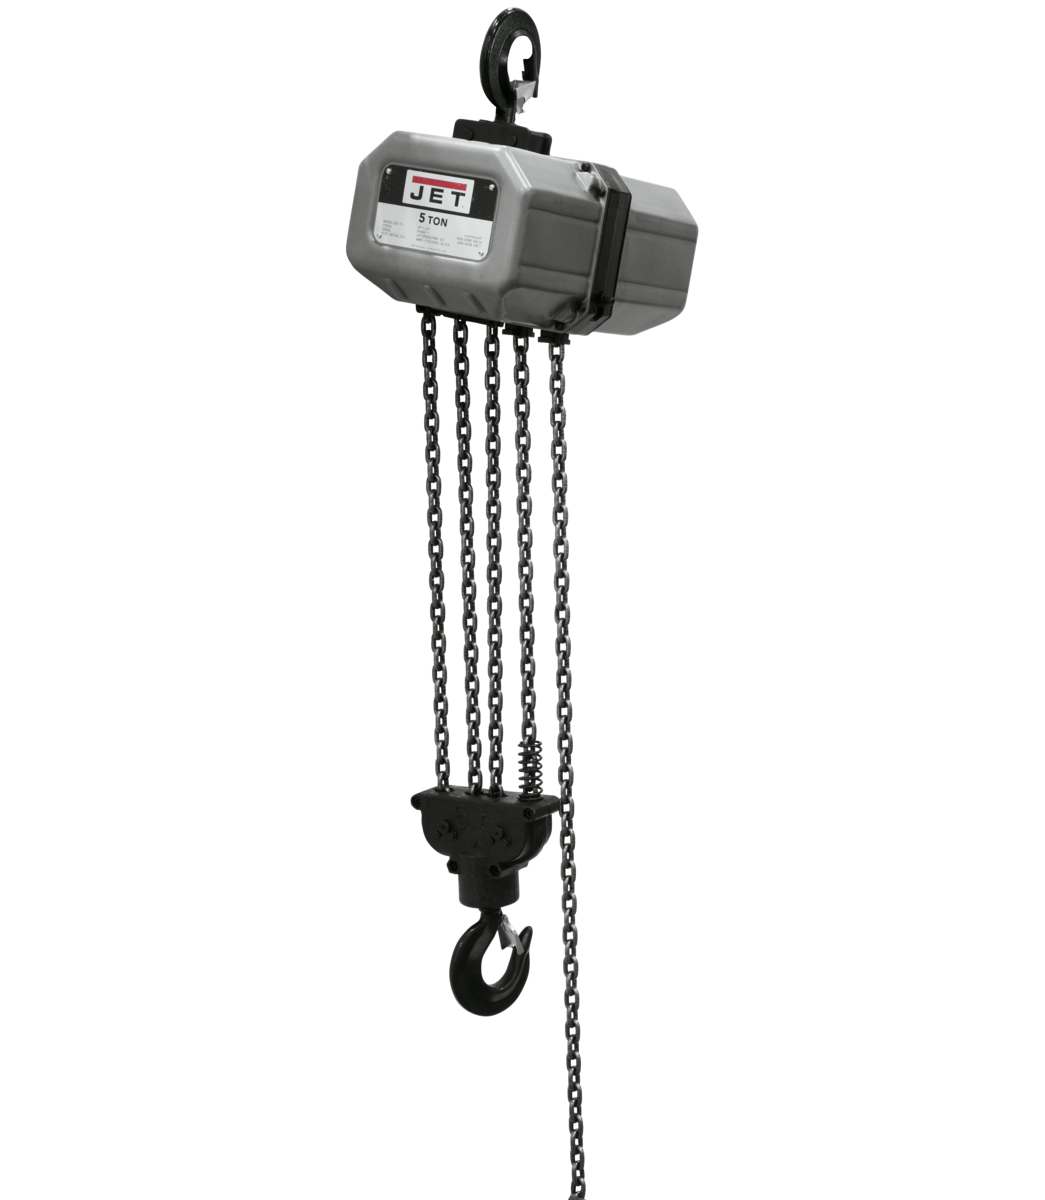 5SS-1C-20, 5-Ton Electric Chain Hoist 1-Phase 20' Lift